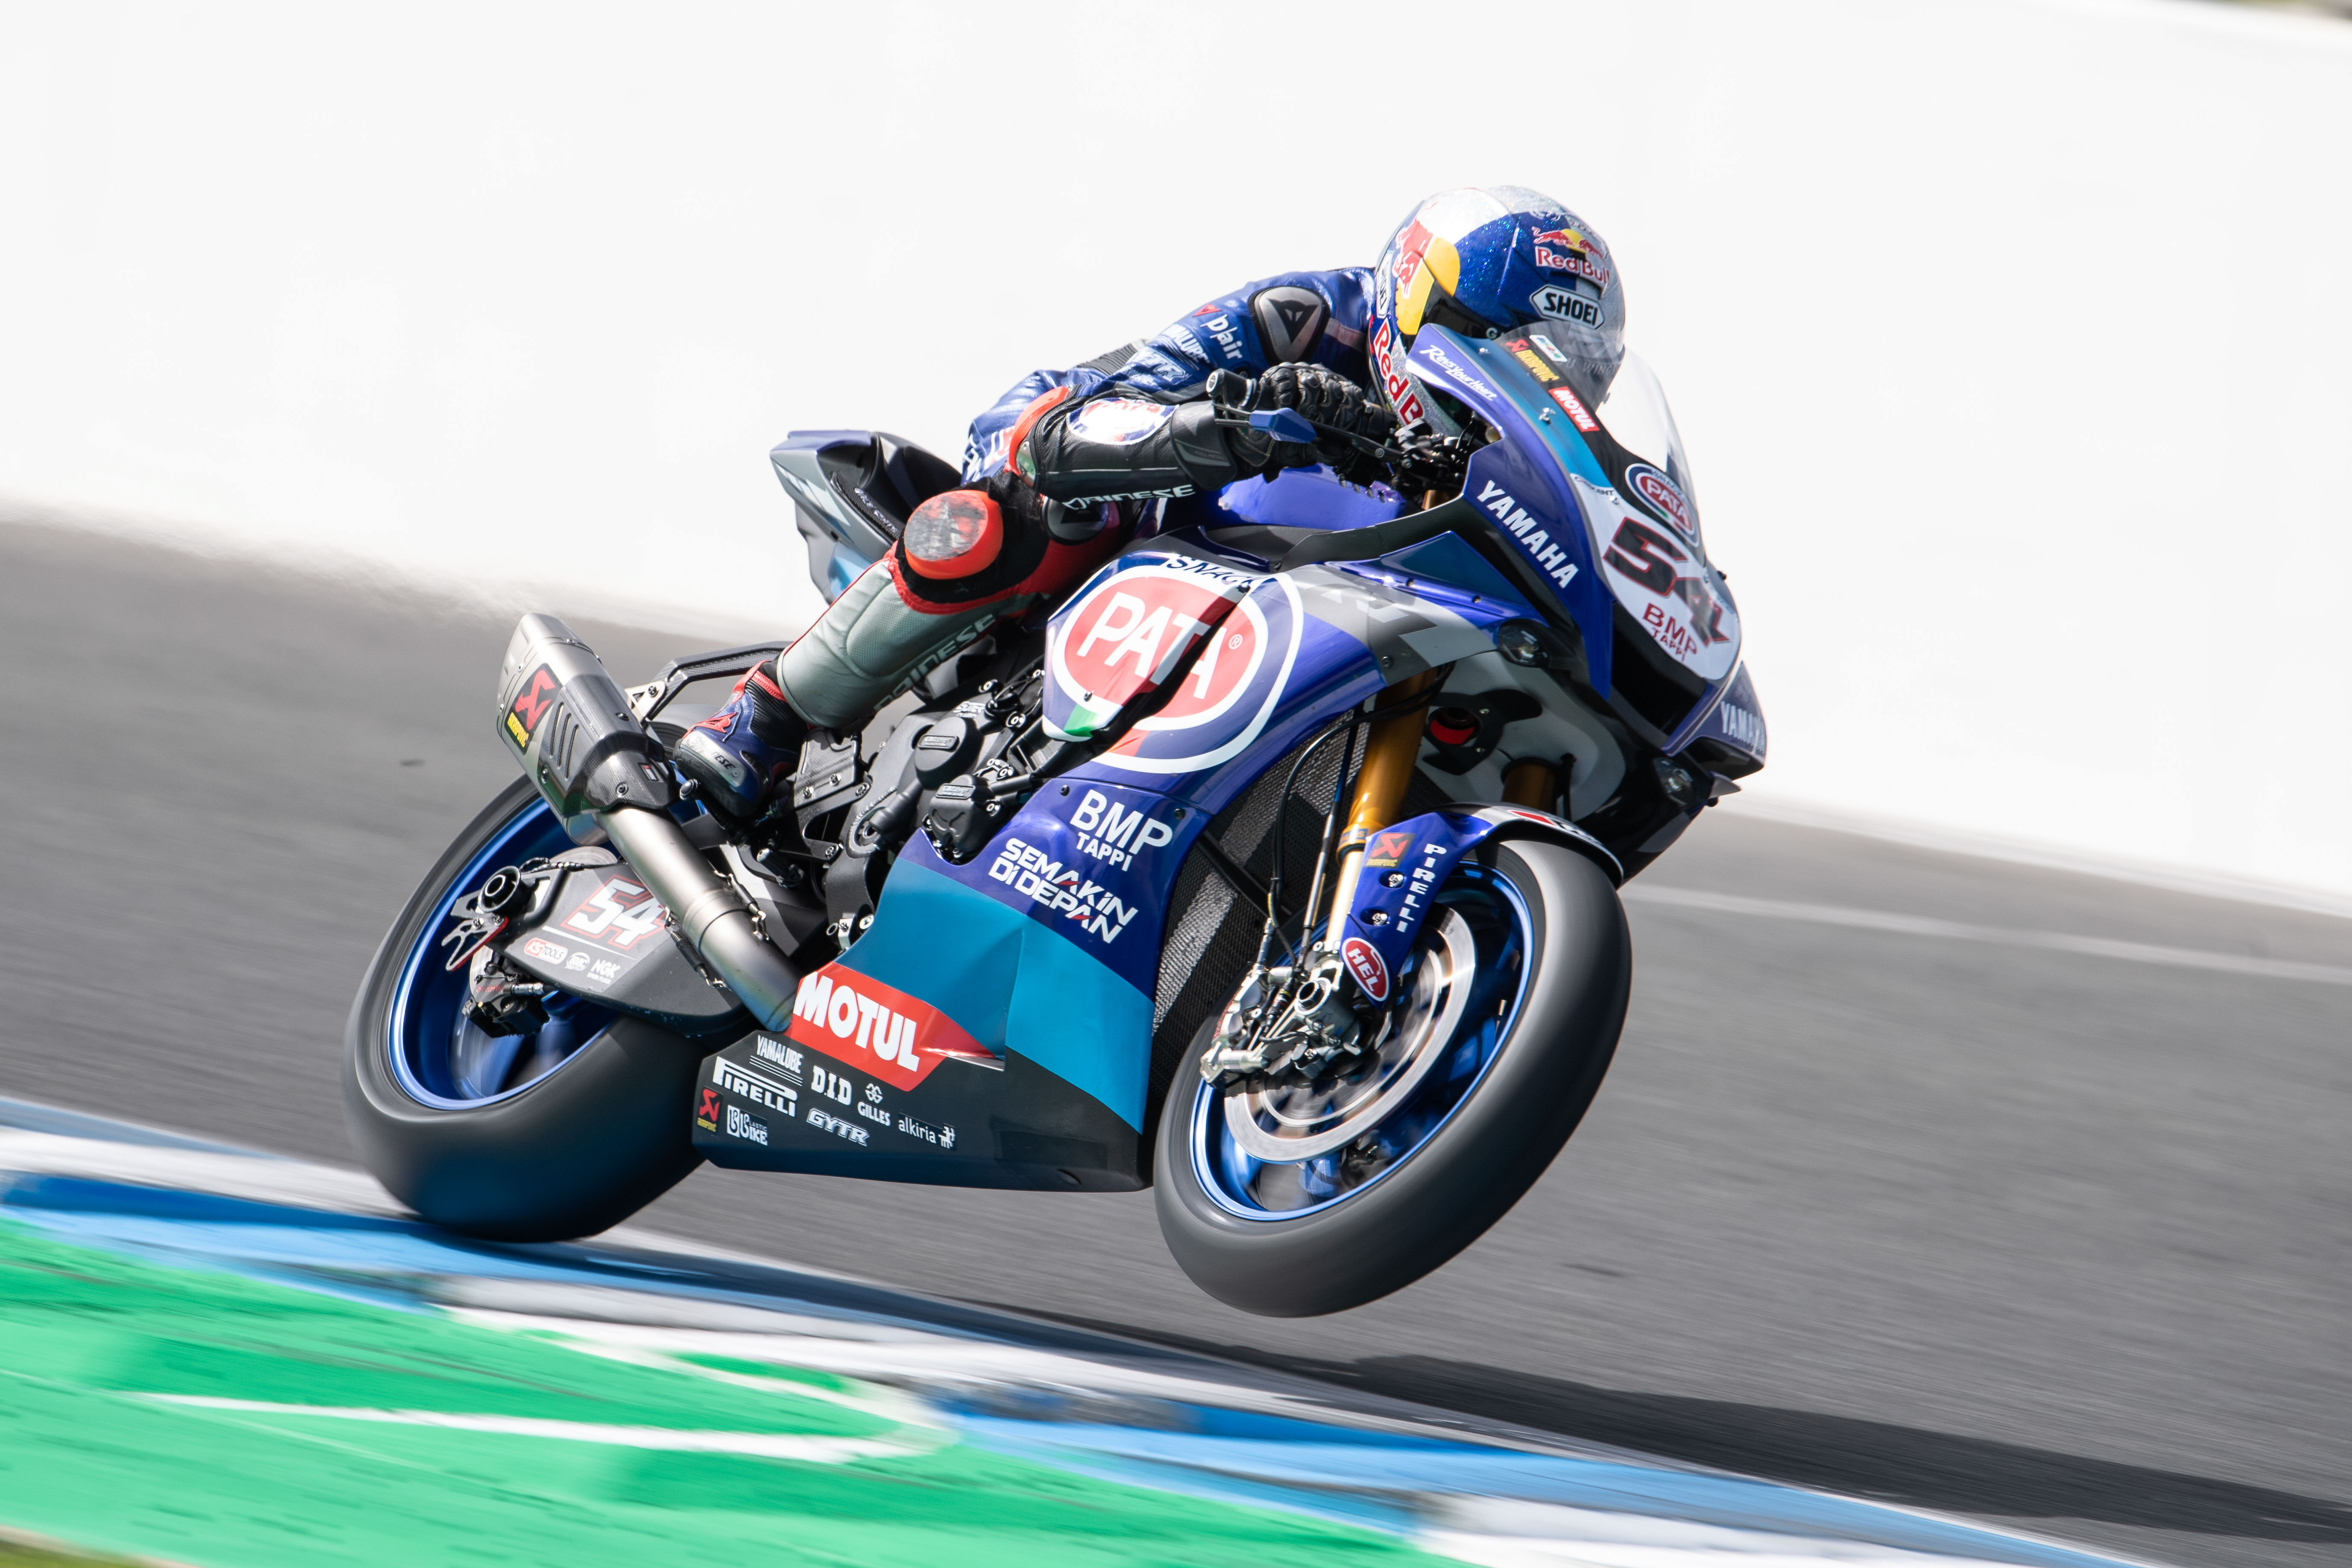 Podium Pace From Pata Yamaha Pair On